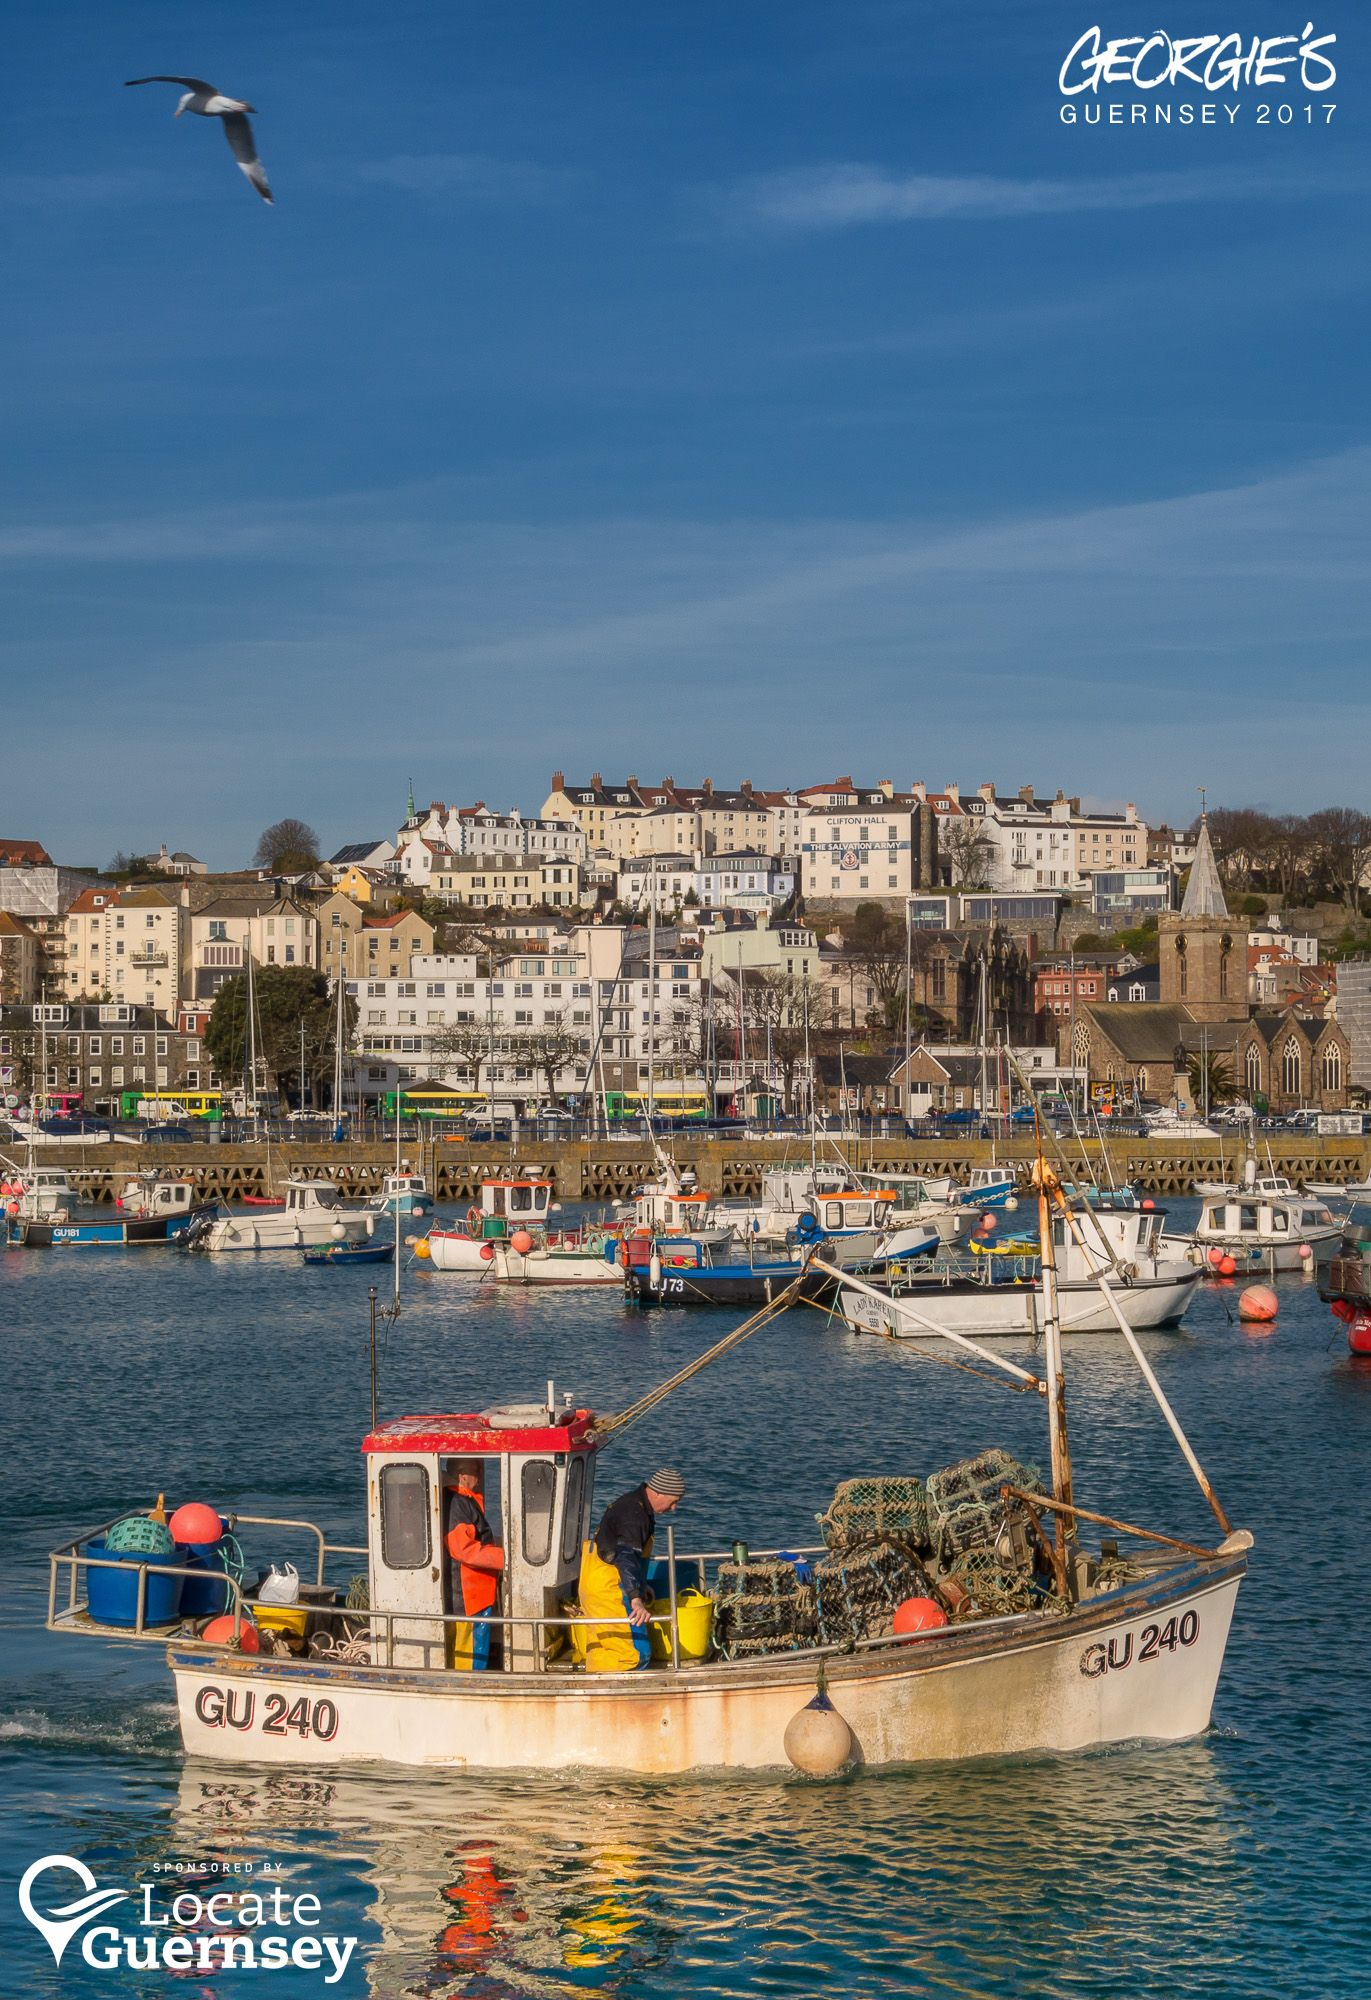 Turned Out Nice Again Down At The Fish Quay St Peter Port Without A Ukulele Locateguernsey Link T Guernsey Island Guernsey Channel Islands St Peter Port